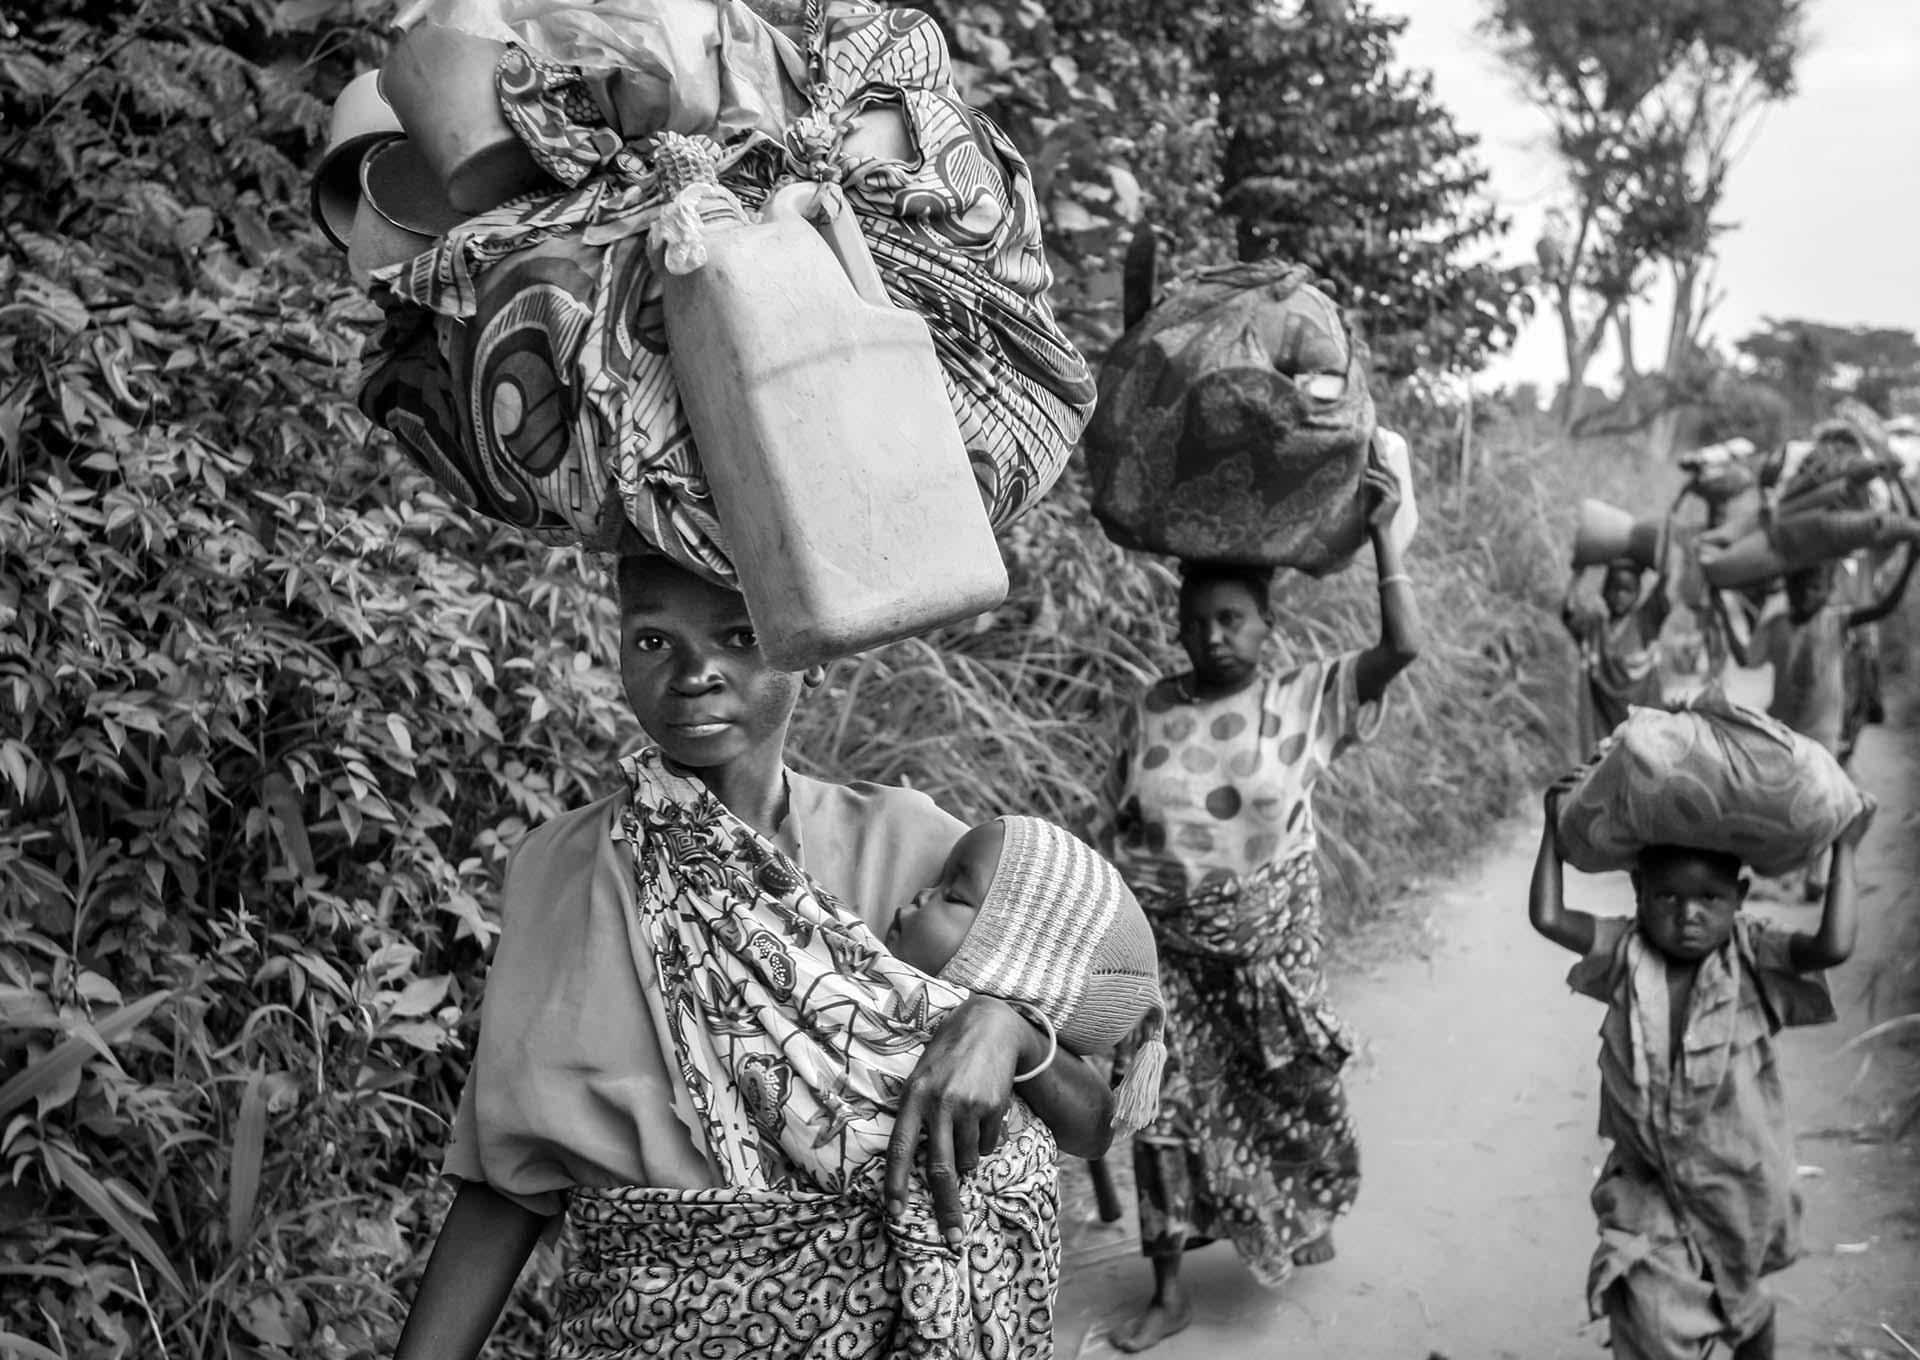 With all they can carry, Congolese make a long journey to find a safe haven near the village of Gety in mineral-rich Ituri region.